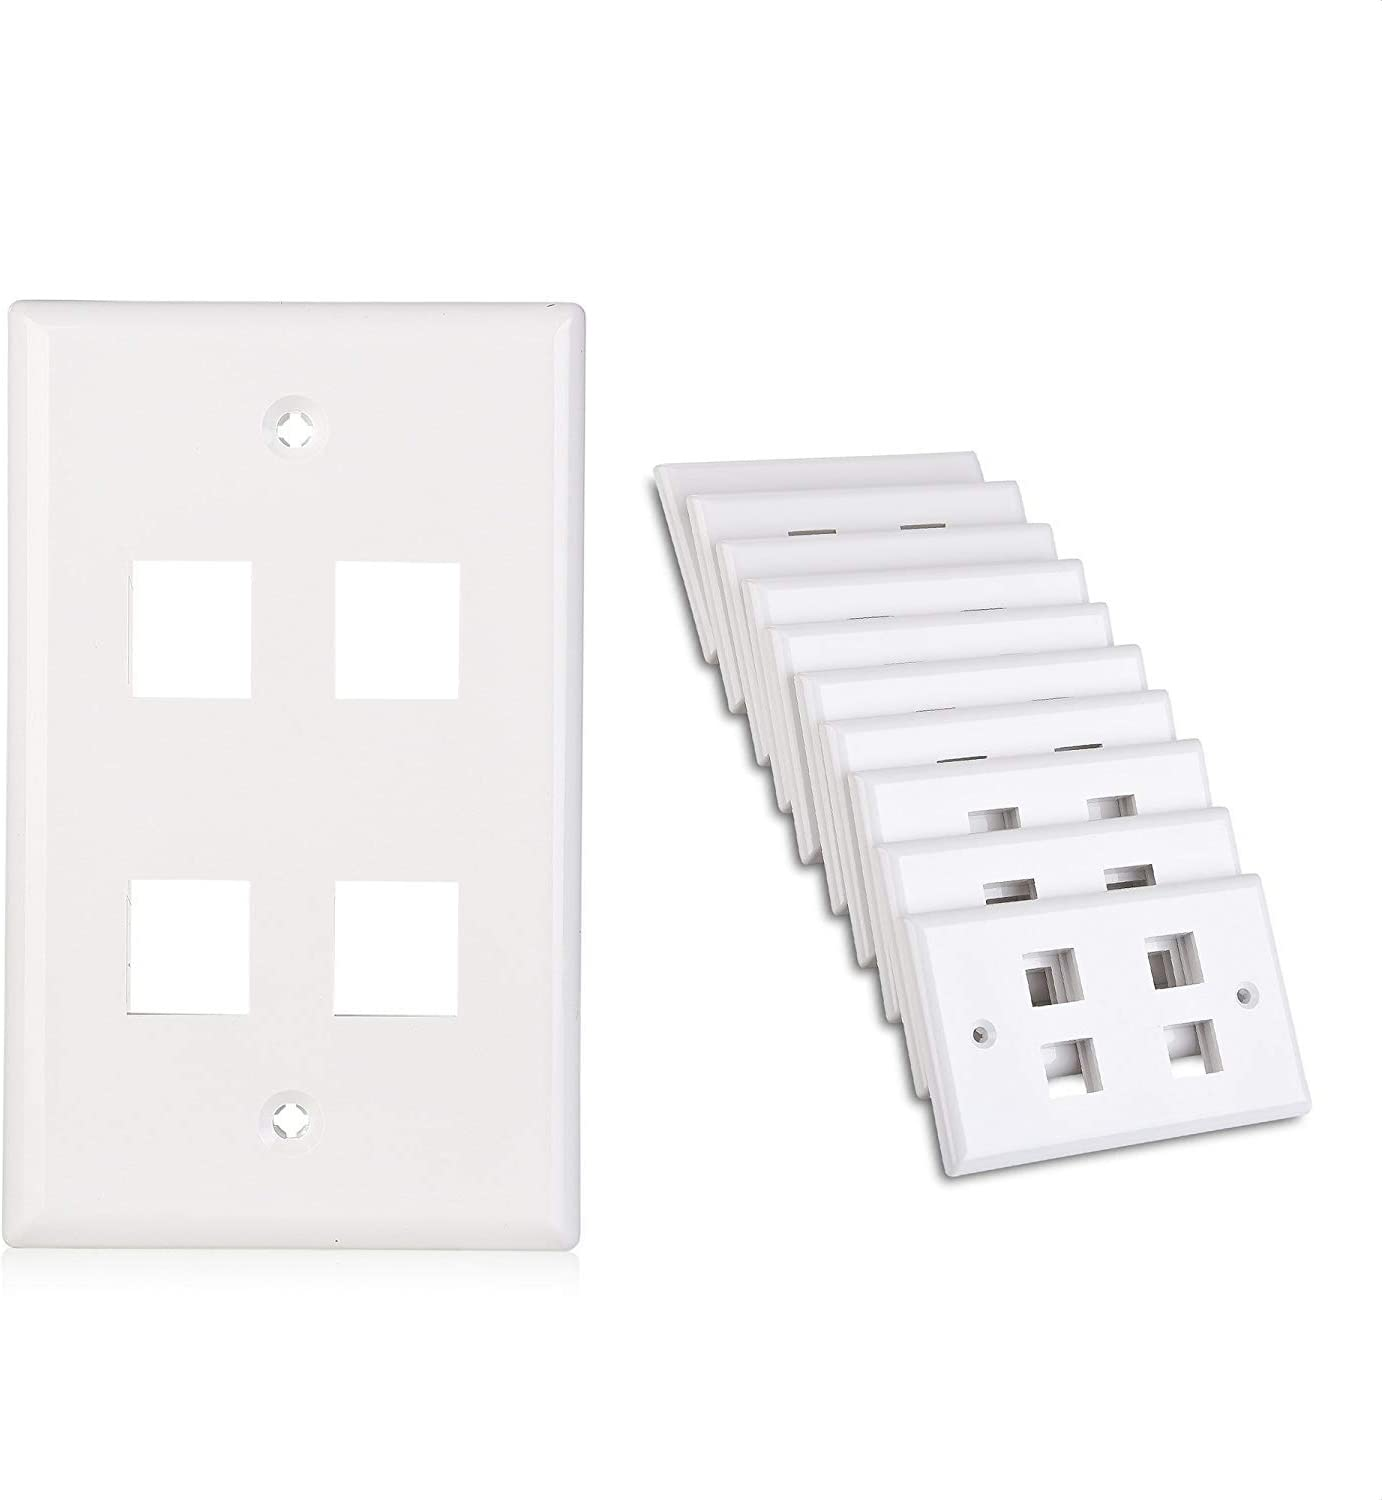 Cable Matters 10-Pack Low Profile 4-Port Cat5e, Cat6 Keystone Jack Wall Plate in White